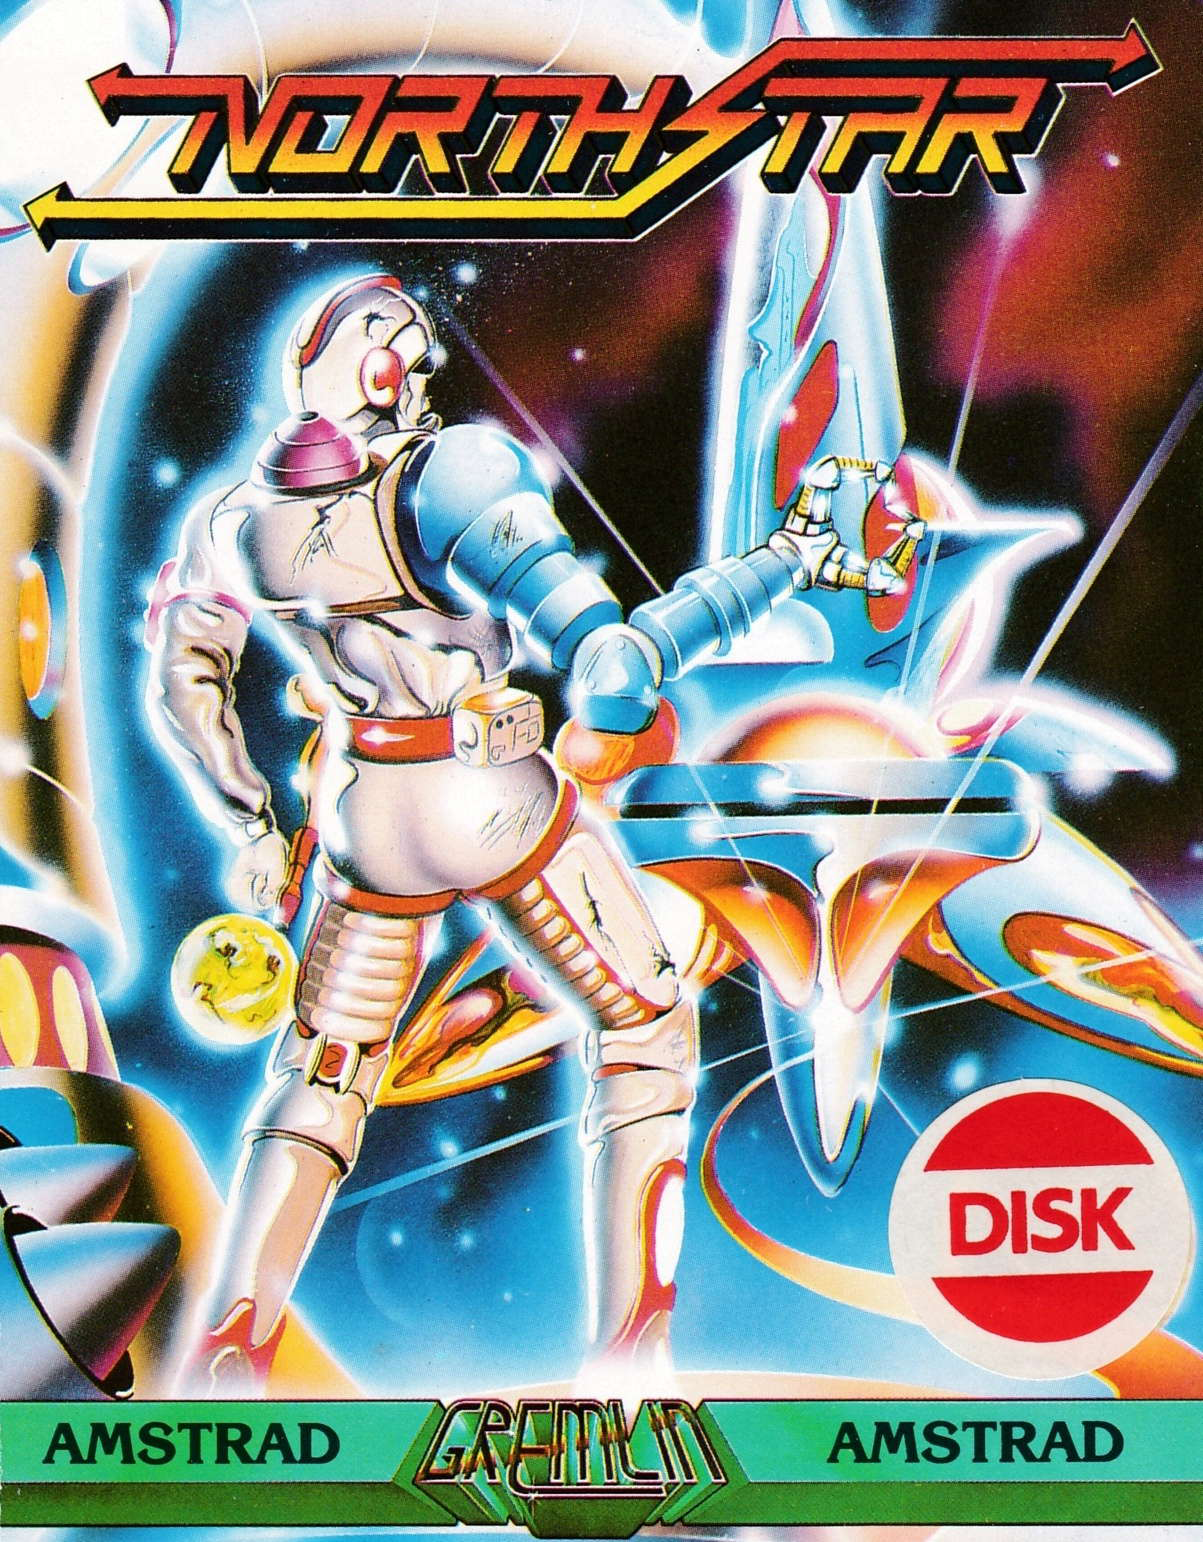 cover of the Amstrad CPC game North Star  by GameBase CPC